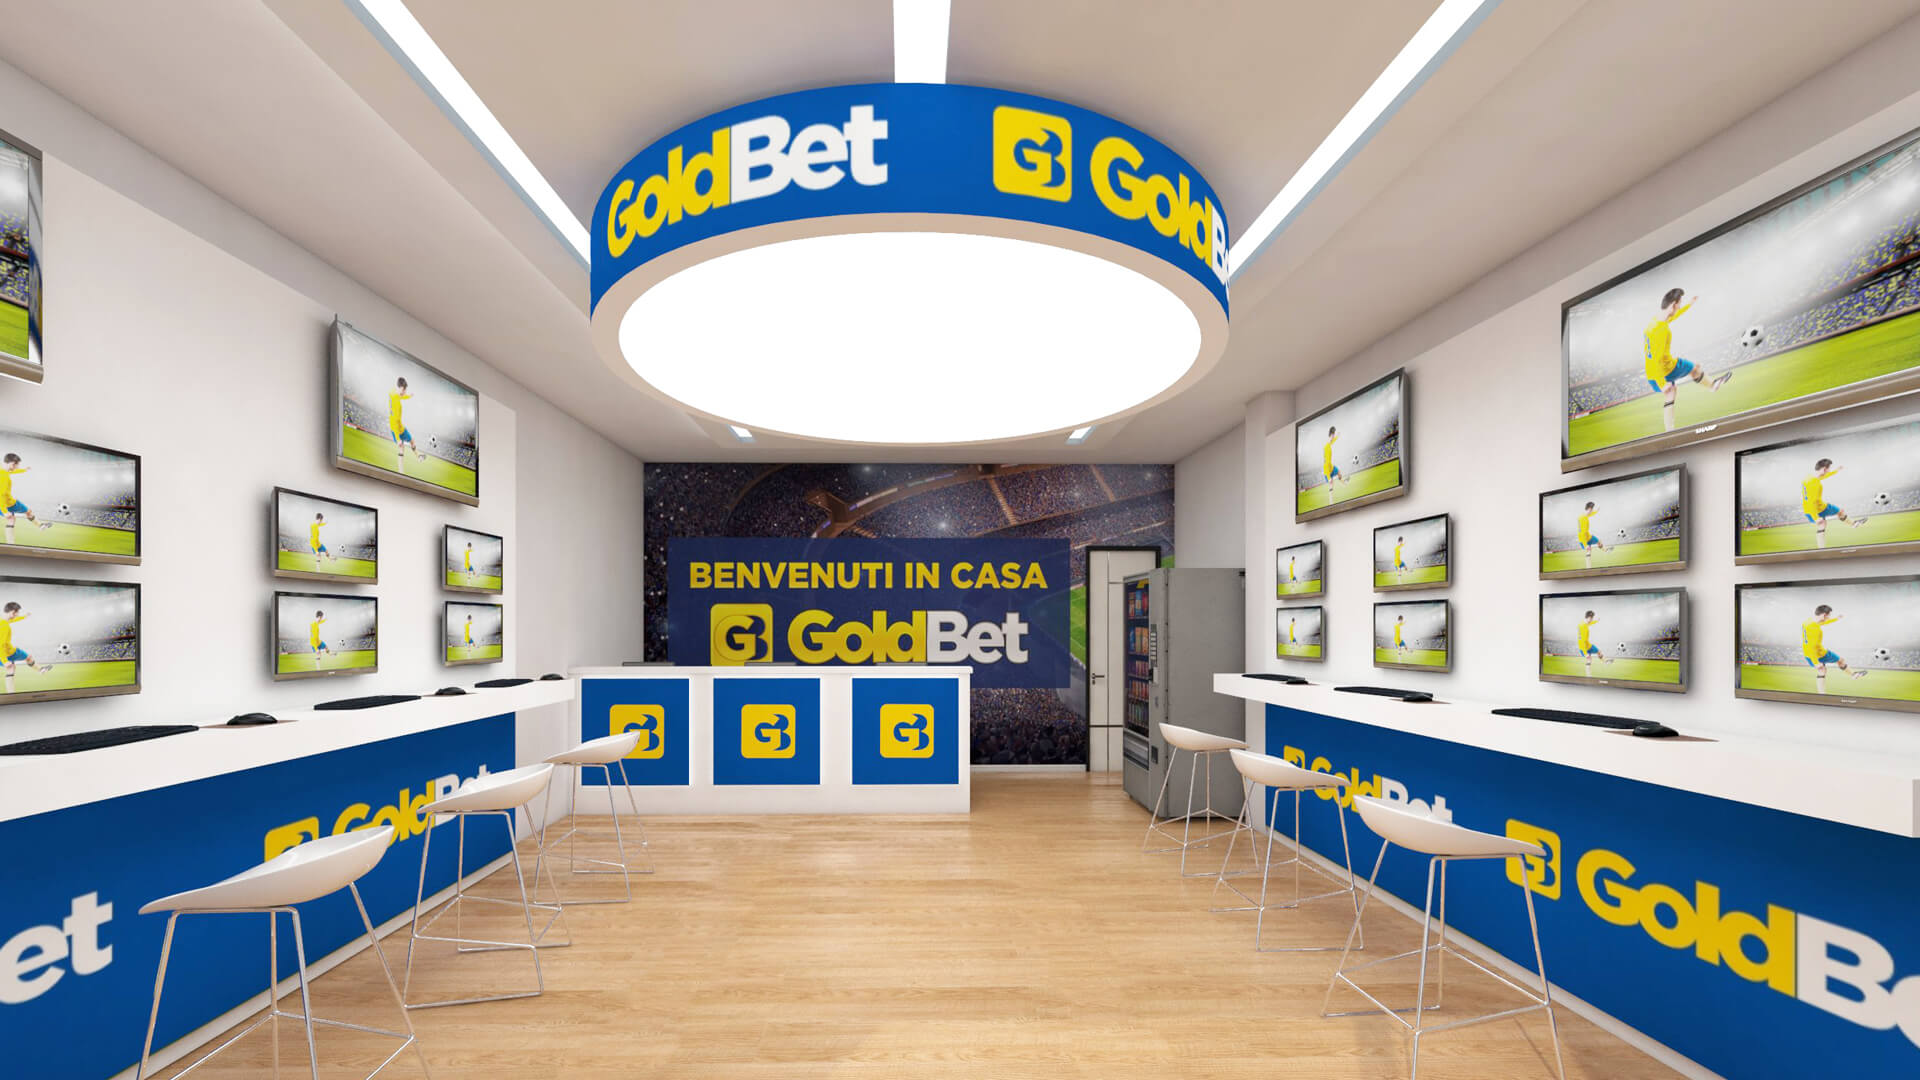 Render varie sale scommesse GoldBet